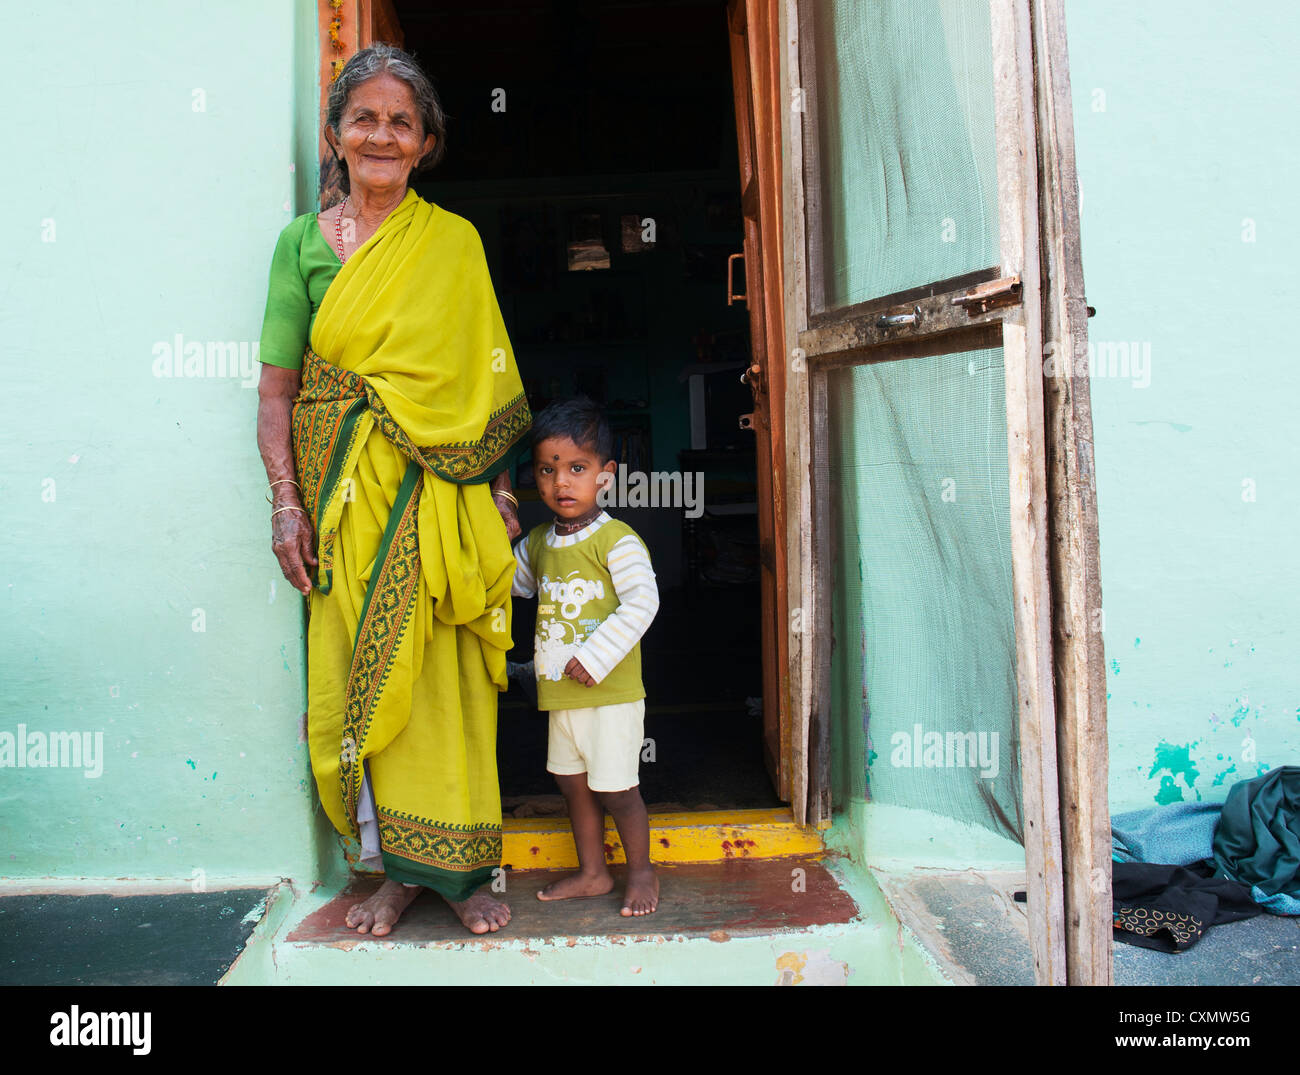 Indian grandmother and baby boy in a rural indian village. Andhra Pradesh, India - Stock Image